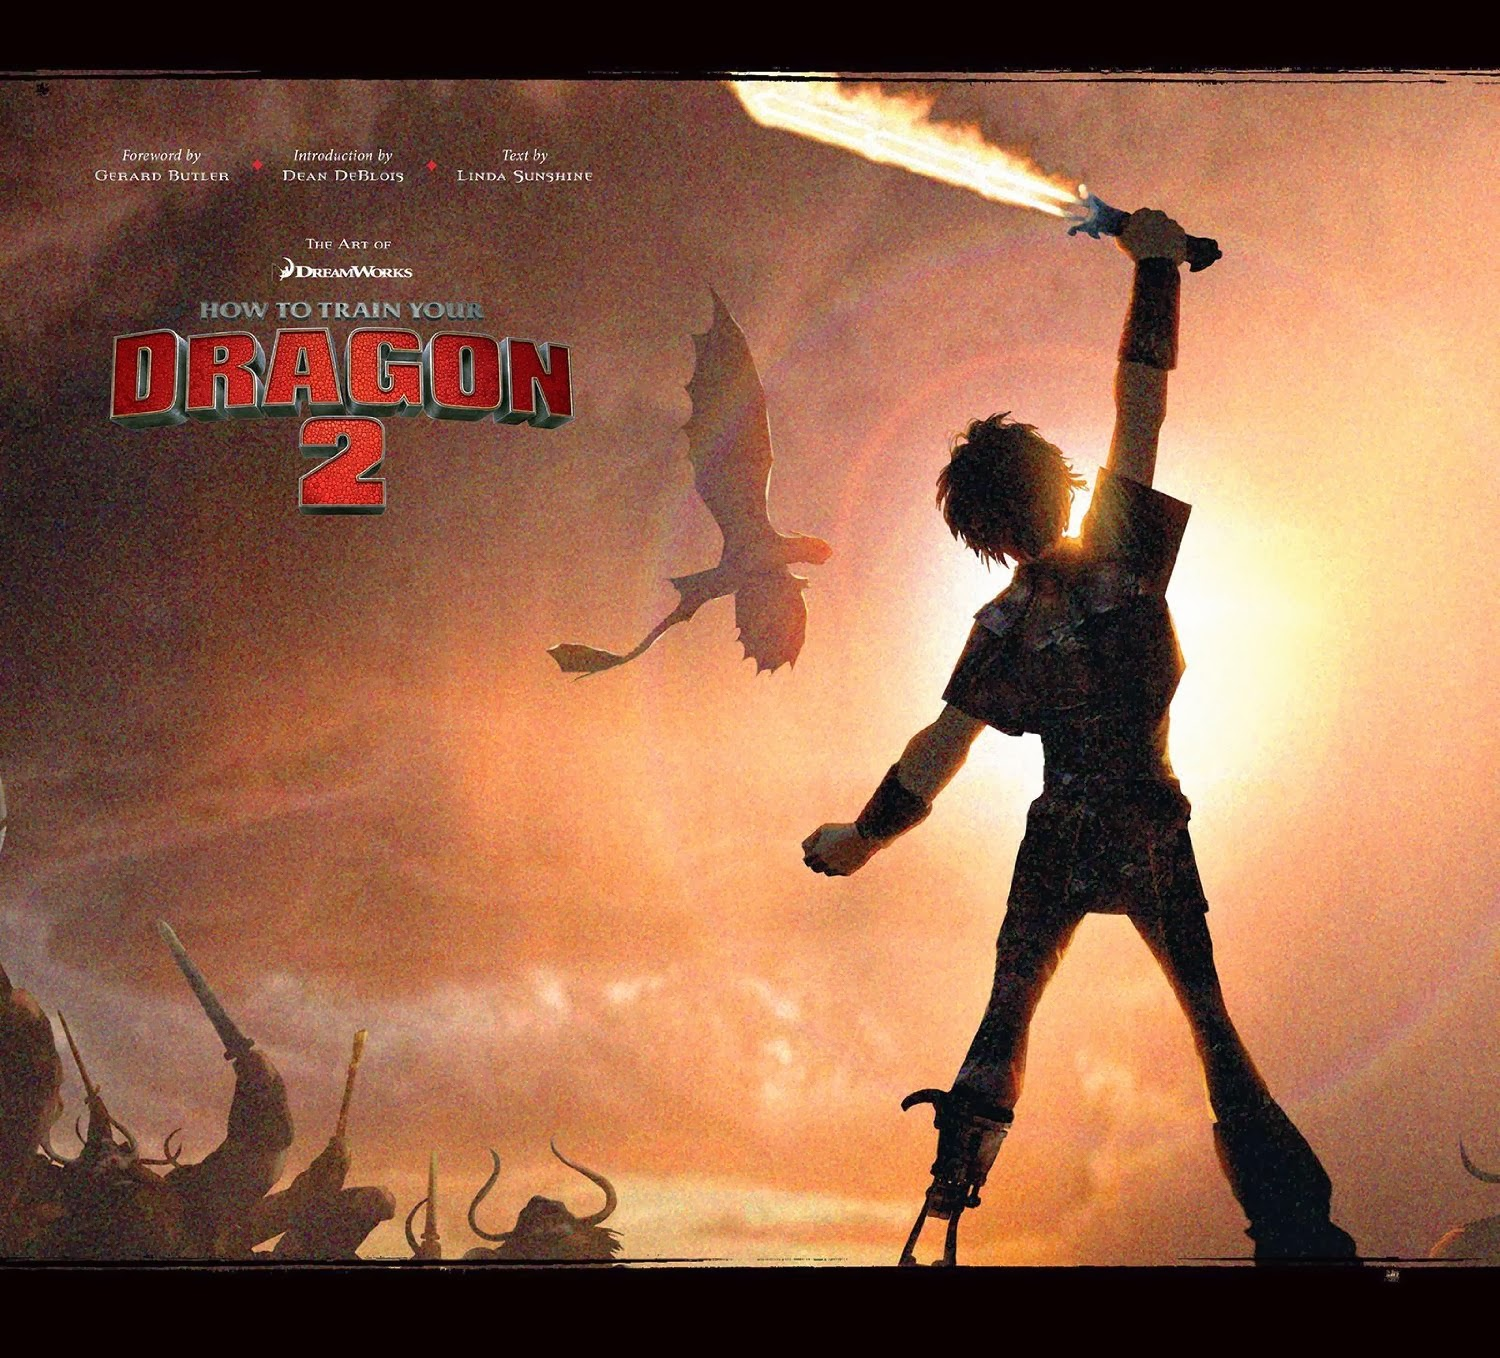 The Art of How to Train Your Dragon 2 | How to Train Your ... - photo#35